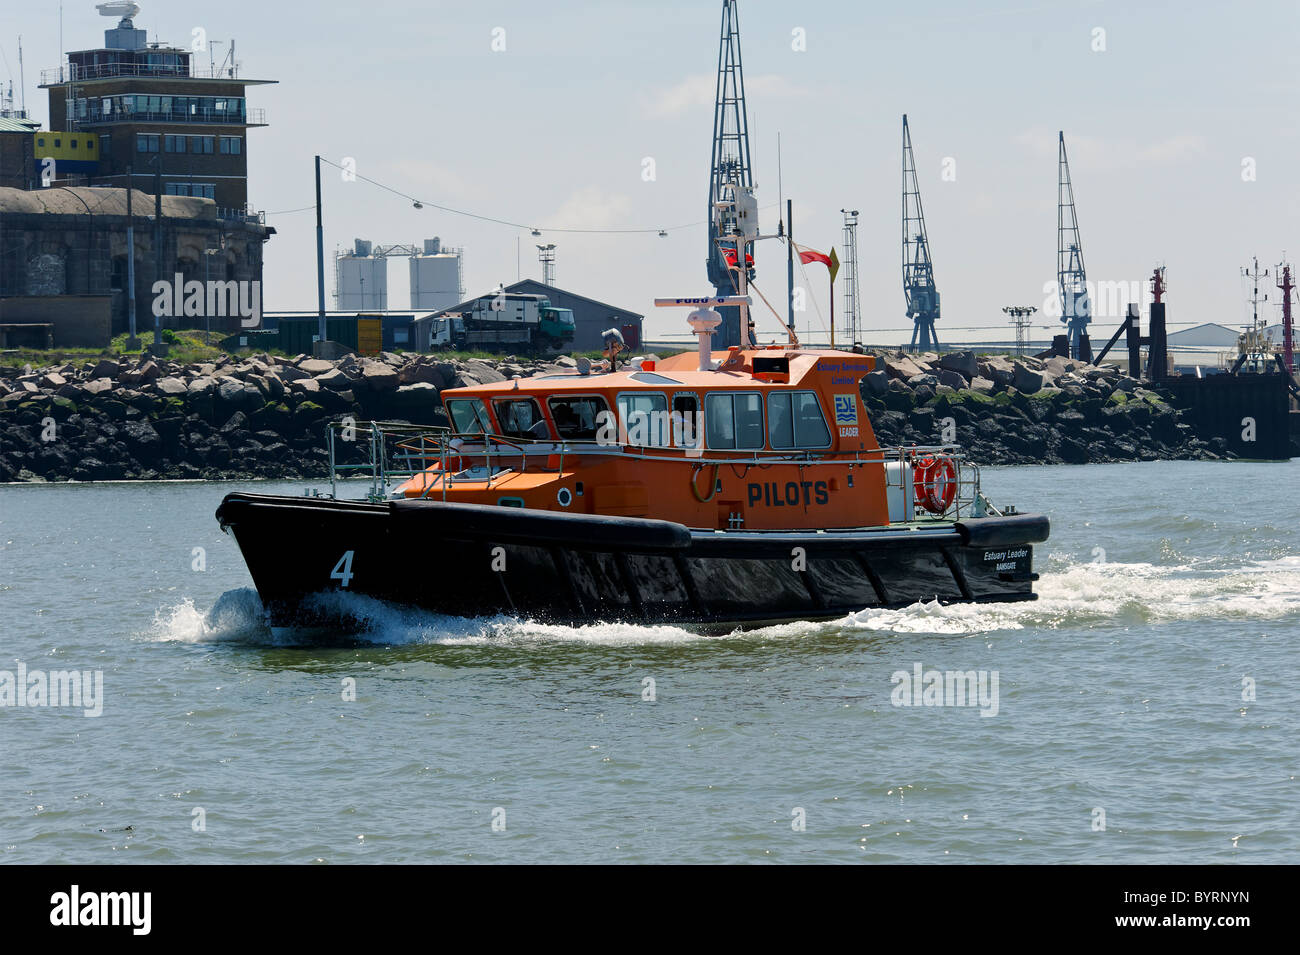 Ramsgate Pilots Boat on the River Medway near Chatham Historic Dockyards - Stock Image